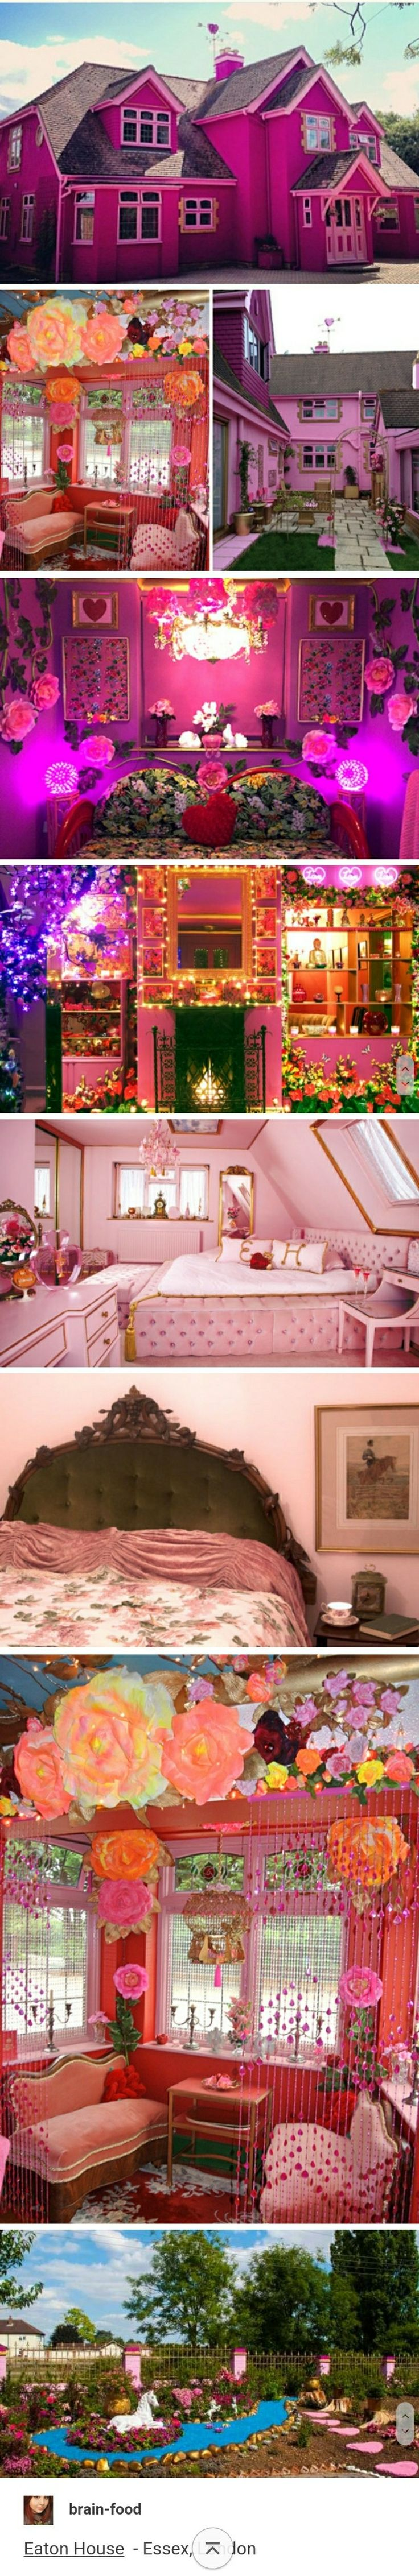 Barbie house with Victorian, fantasy, and Indian themes